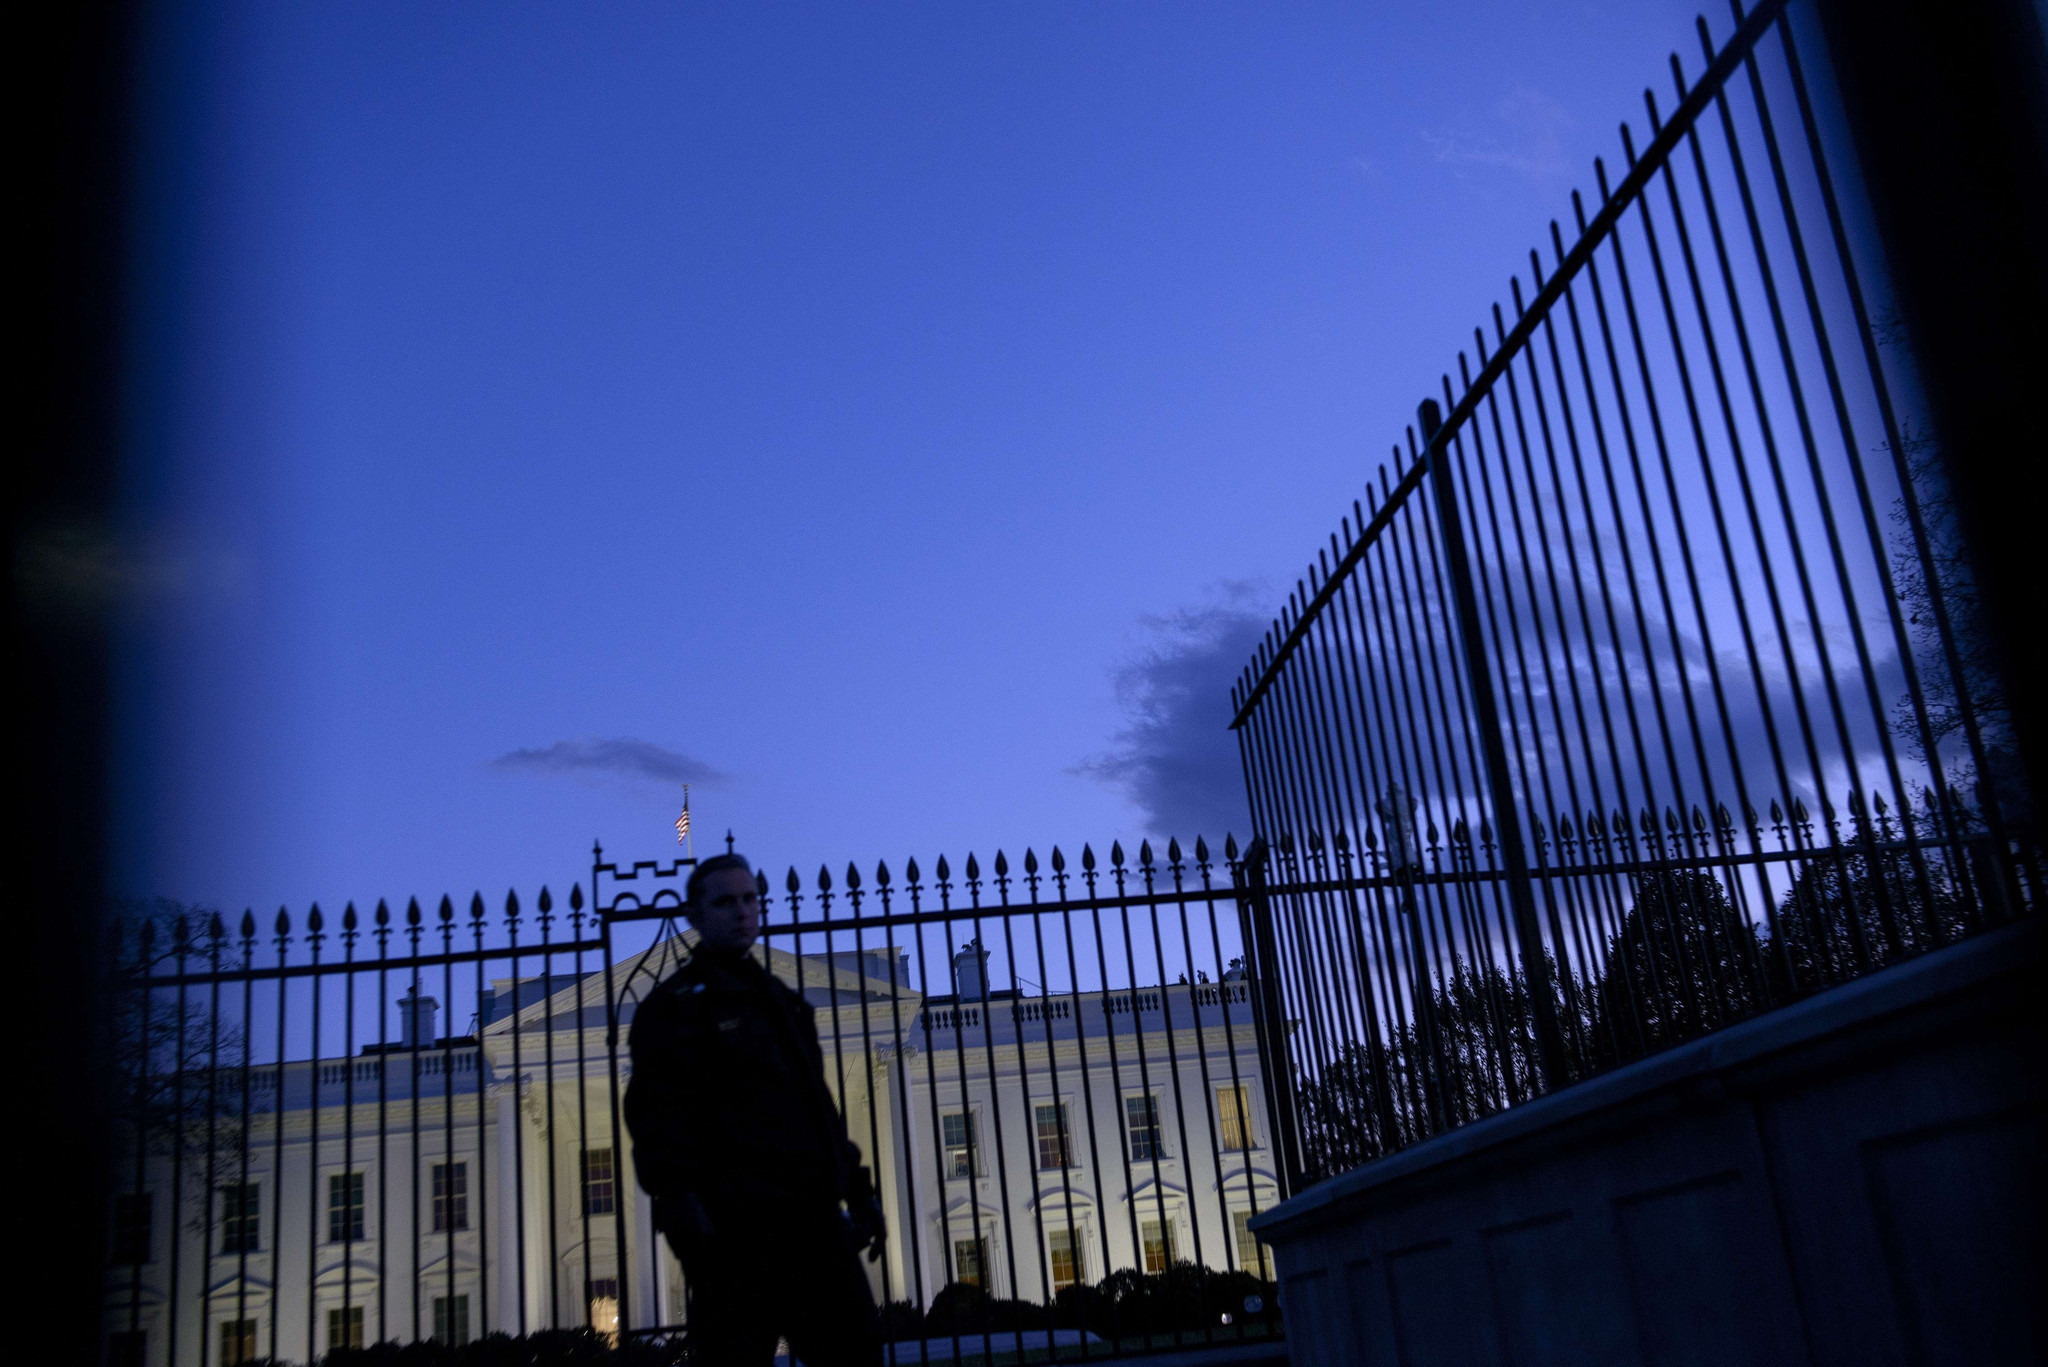 Panel calls for Secret Service reforms, including new White House fence